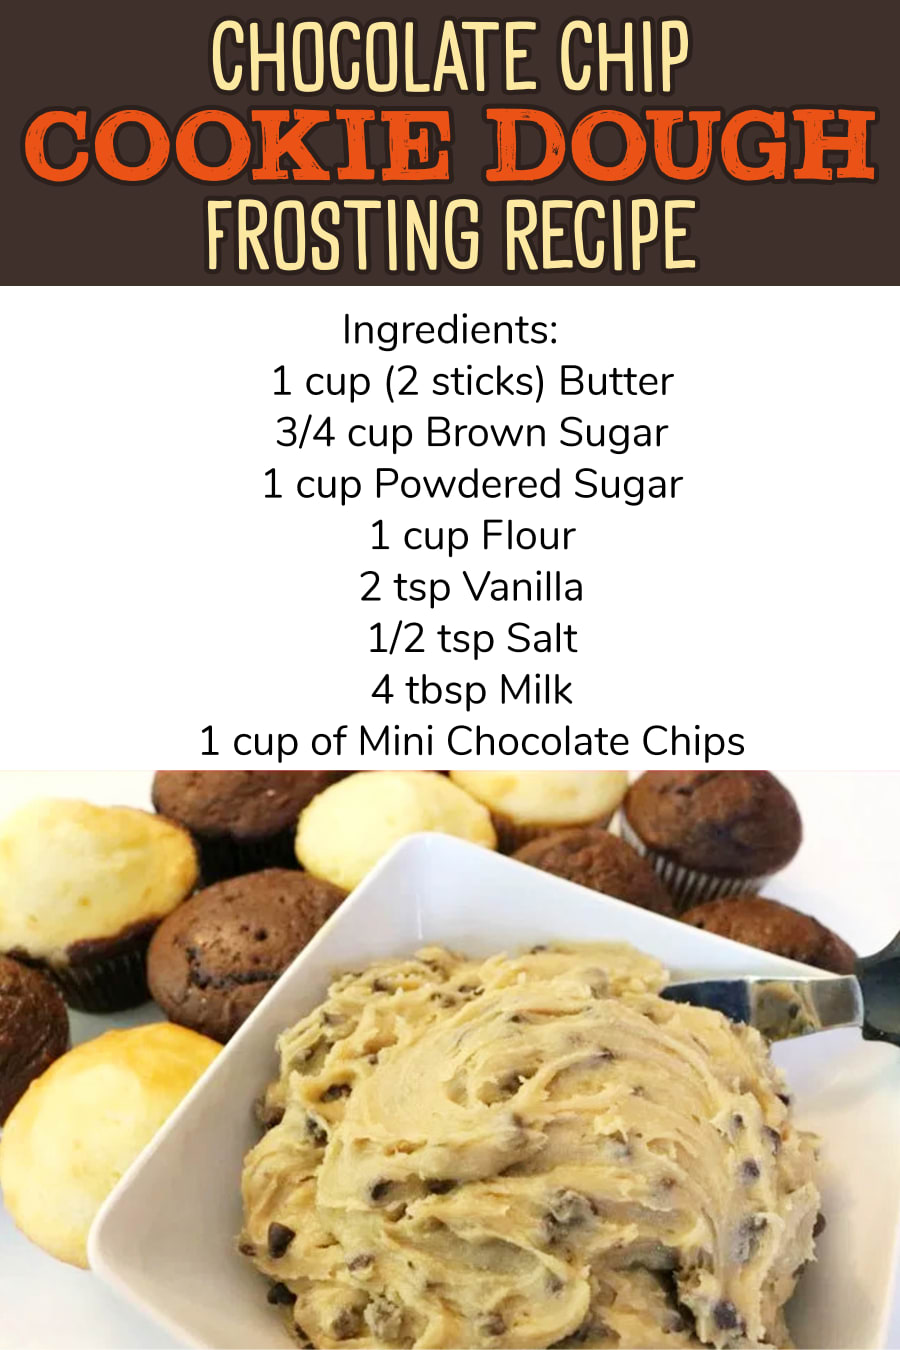 Chocolate chip cookie dough frosting recipe for cakes, cupcakes, brownies and sweet treats for a crowd (gluten free frosting recipe alternative too).  Easy homemade frosting recipes - cookie dough icing, chocolate chip frosting - recipes to try - easy desserts for a crowd - birthday cake ideas for chocolate lovers